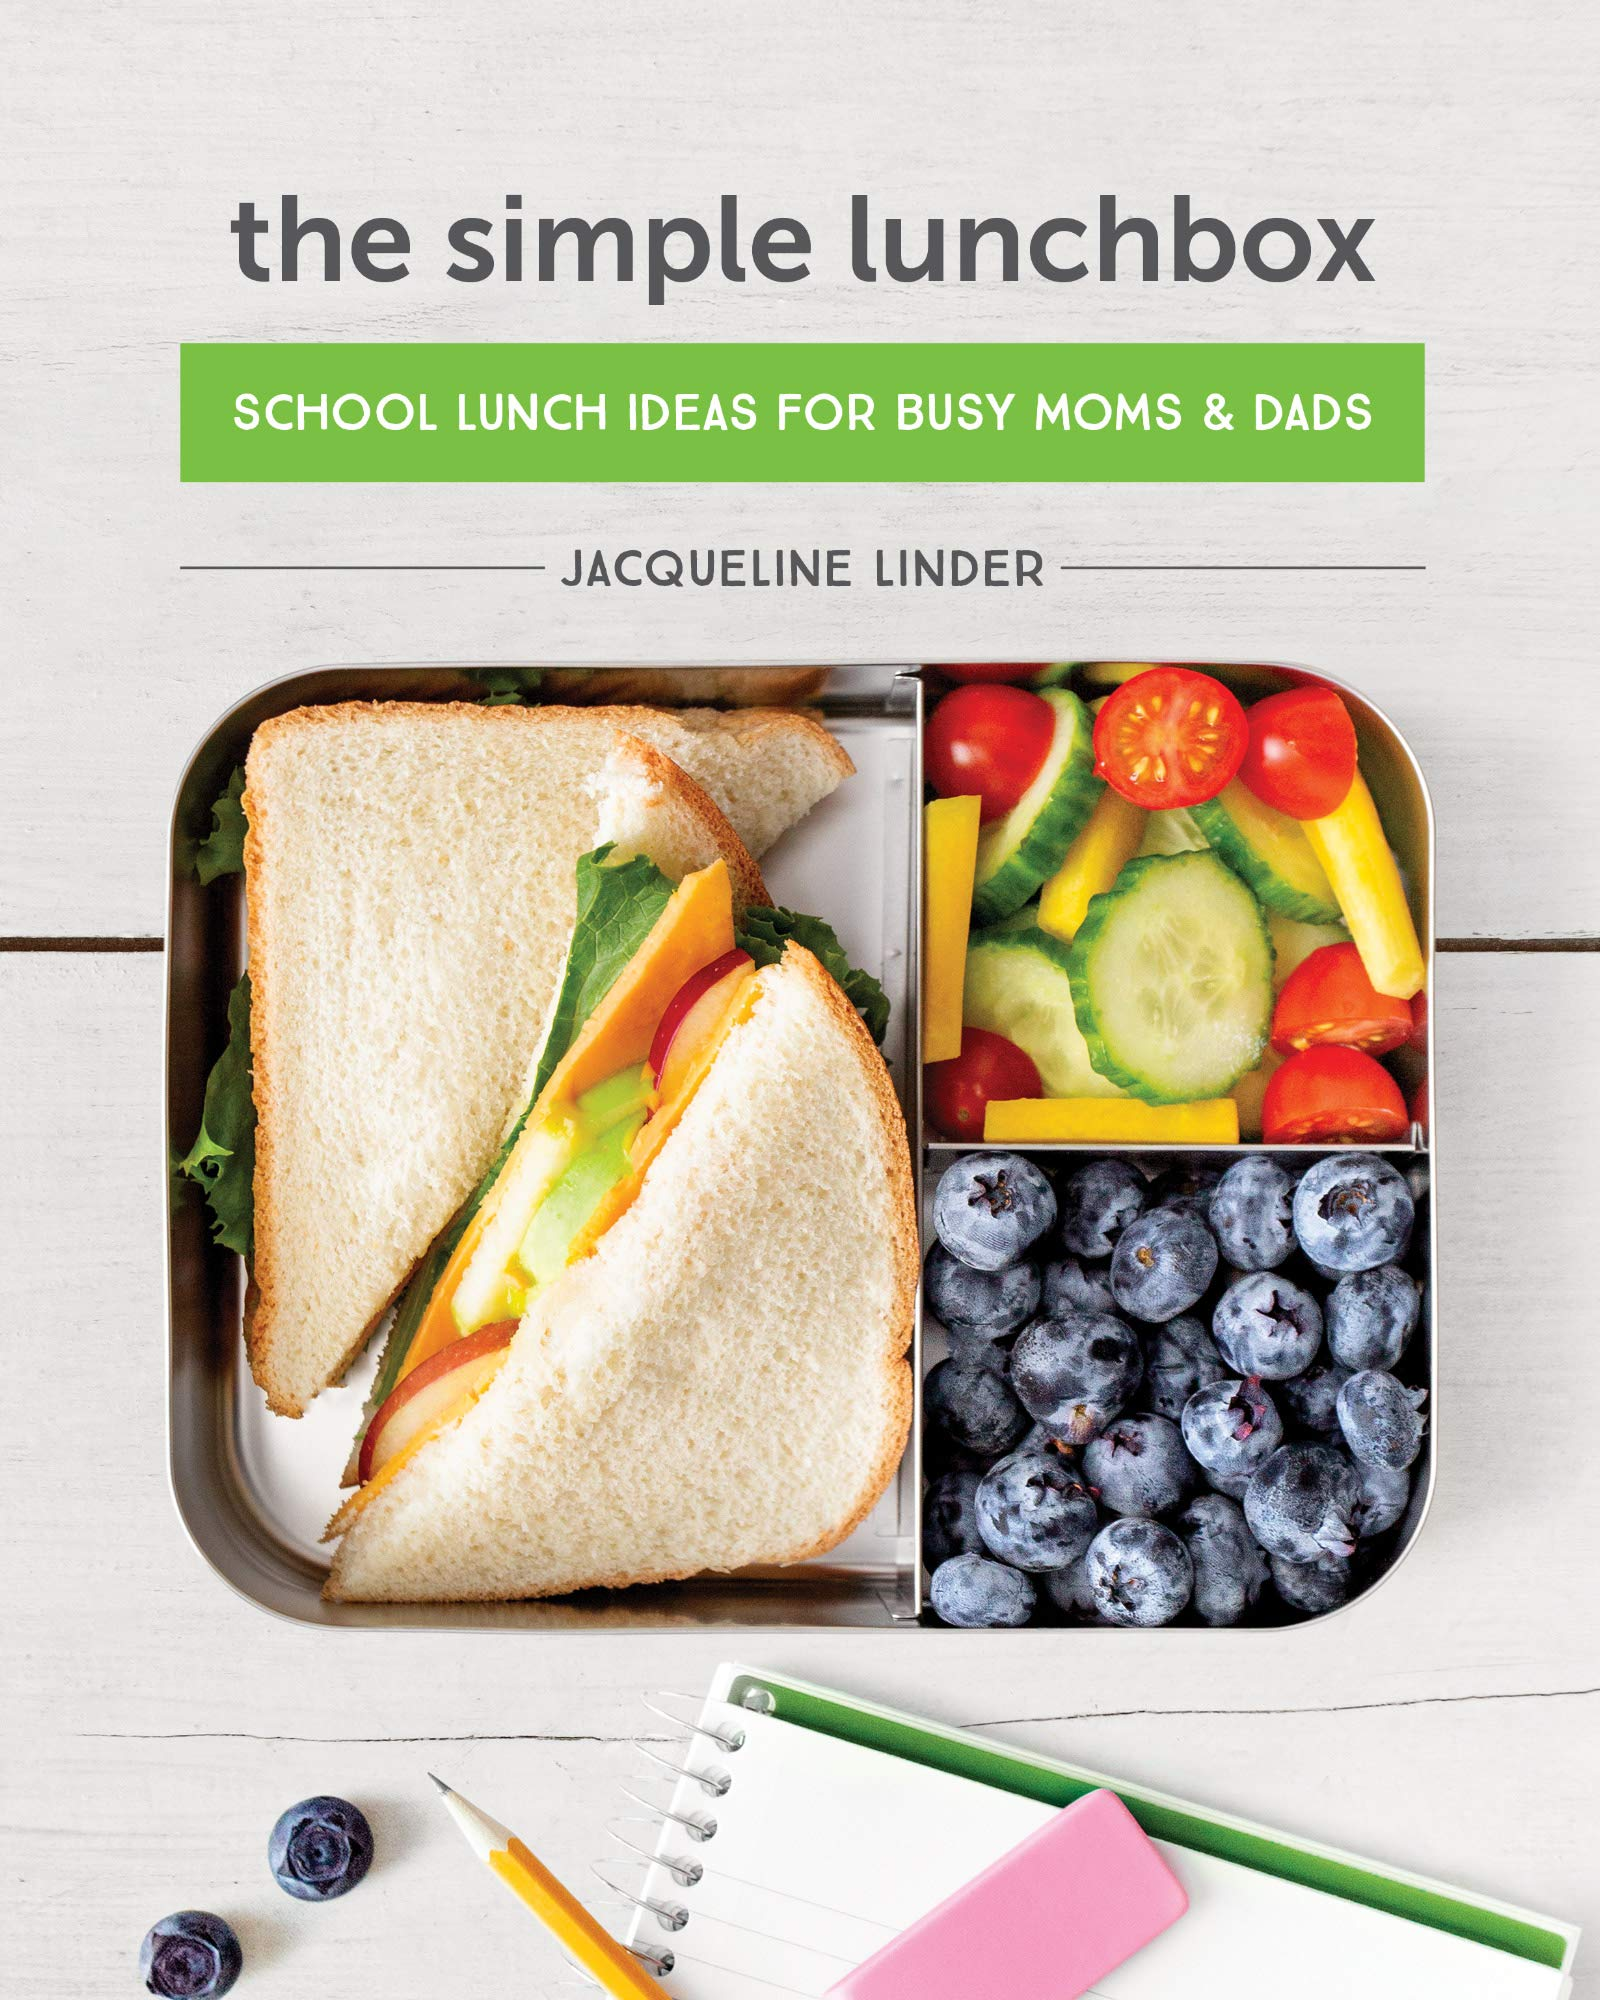 Simple Lunchbox School Lunch Ideas product image